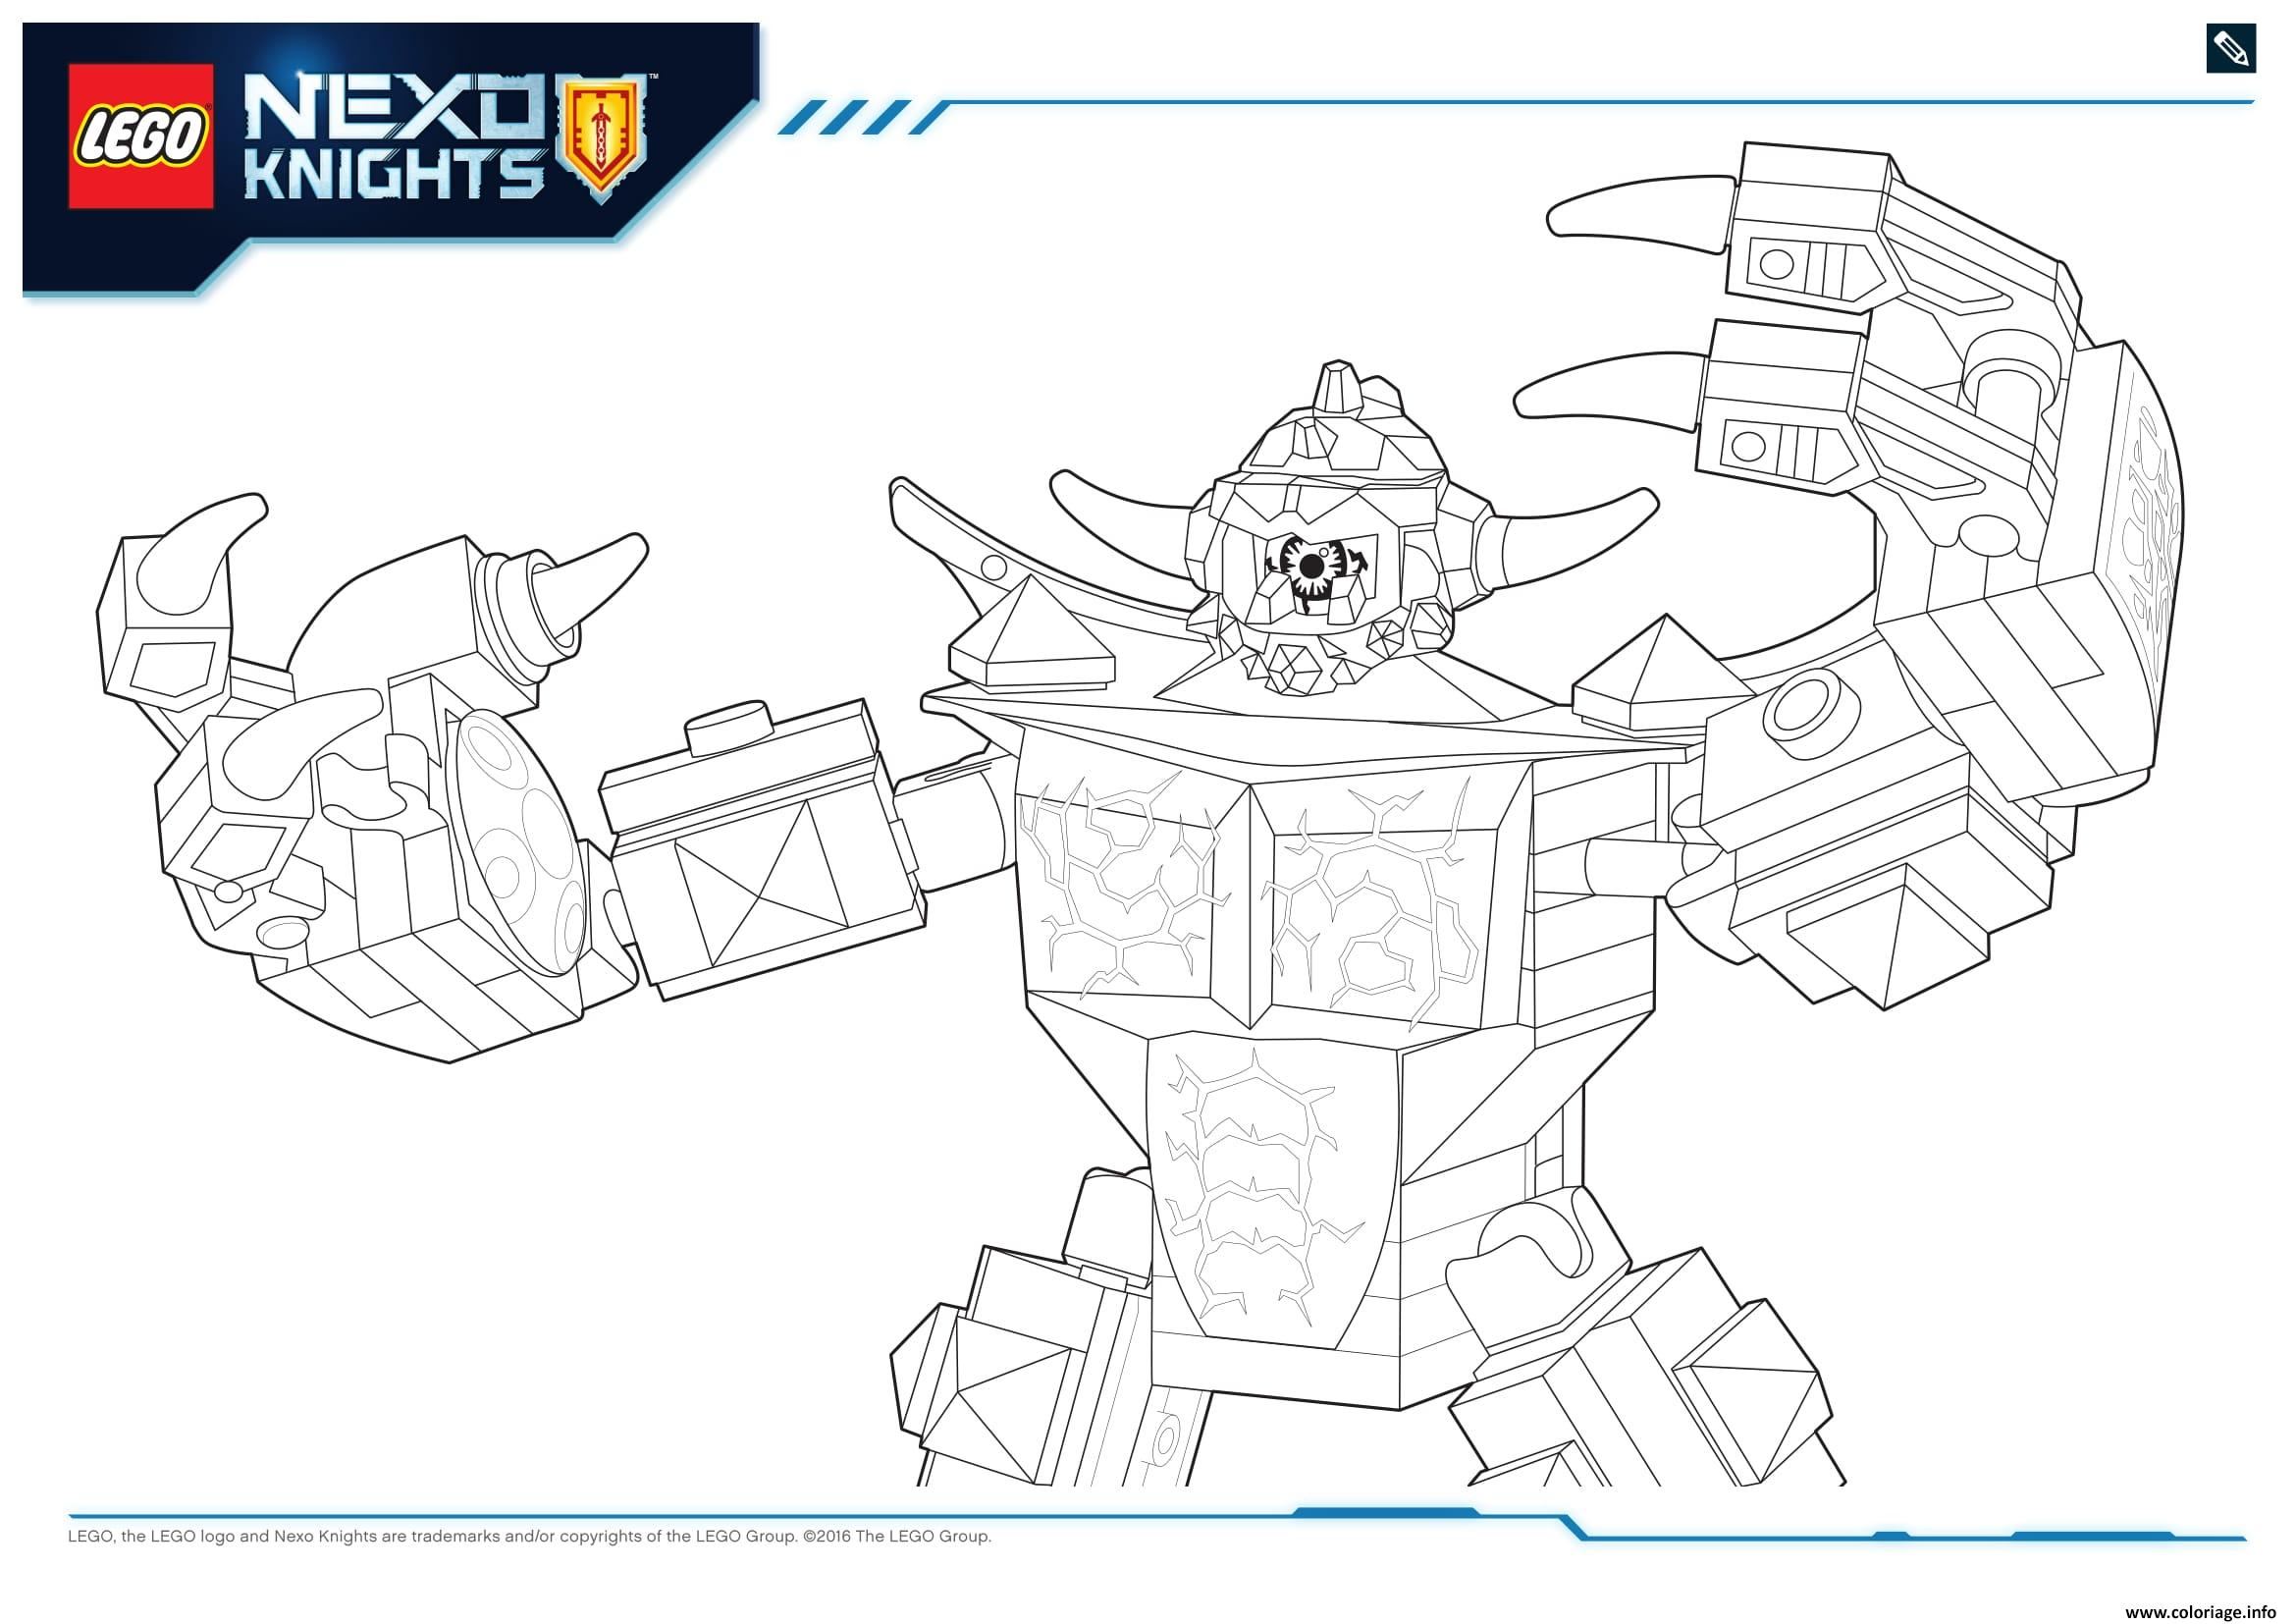 Coloriage Lego Nexo Knights Monster Productss 5 Dessin à Imprimer